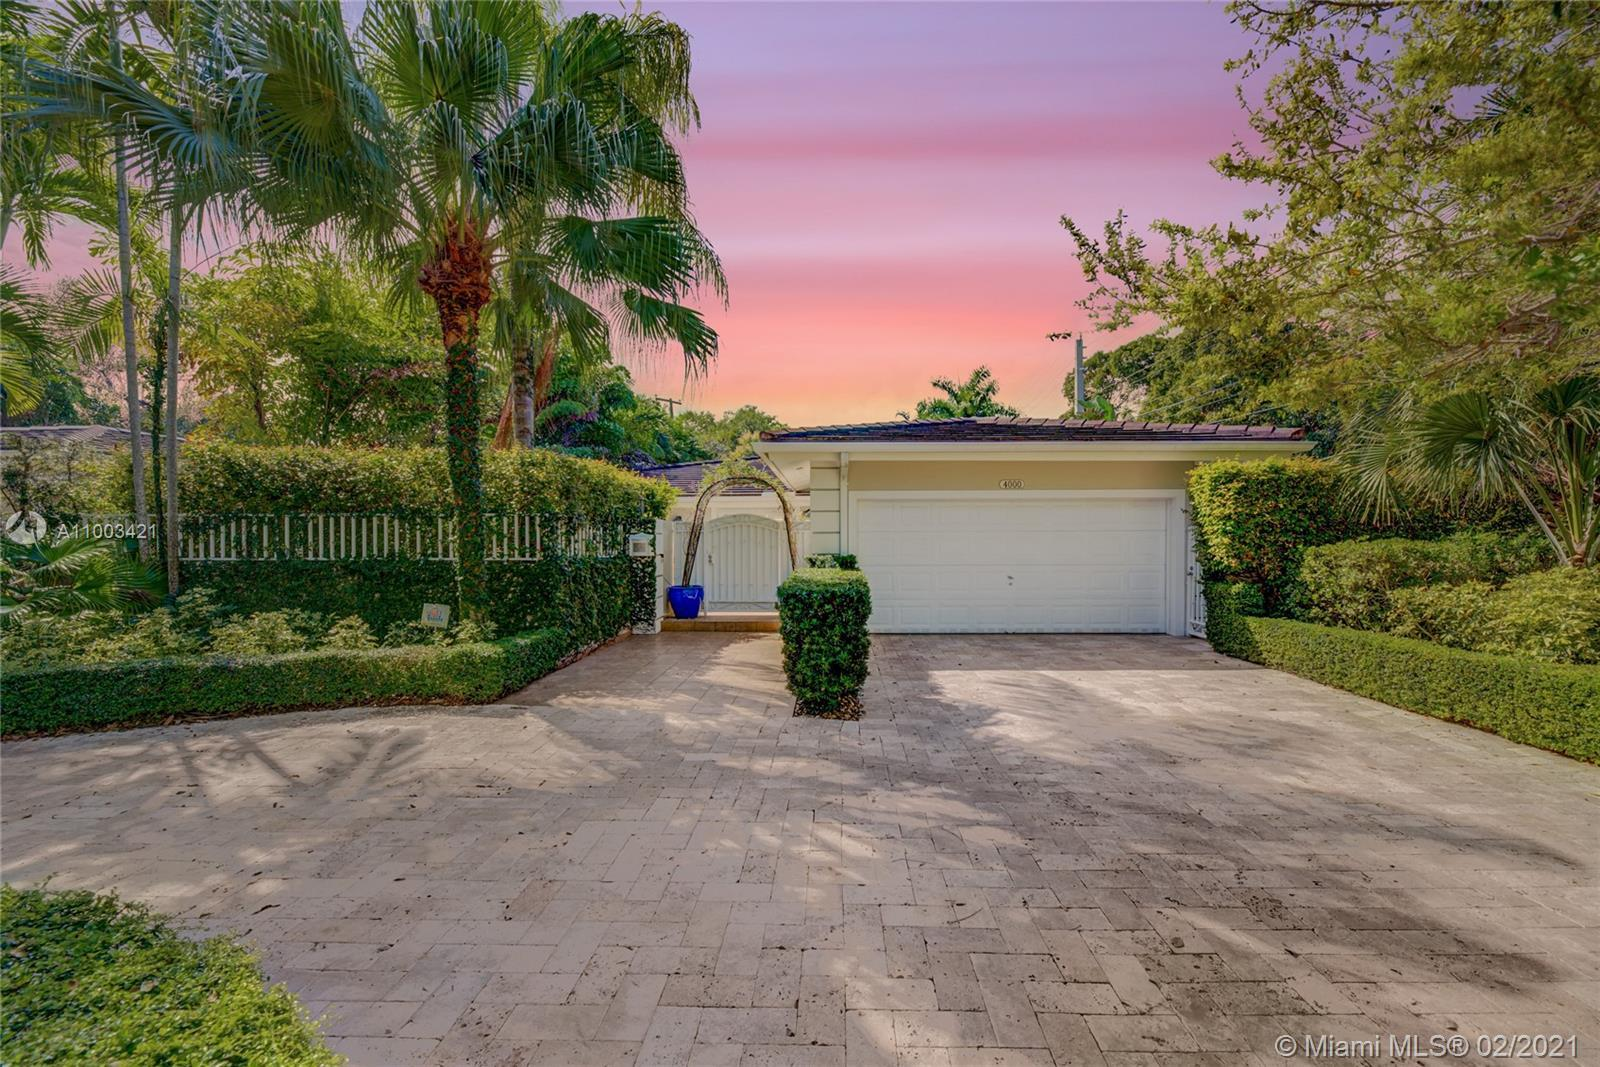 Riviera Golf Course home located in the heart of Coral Gables with lush landscaping surrounding this